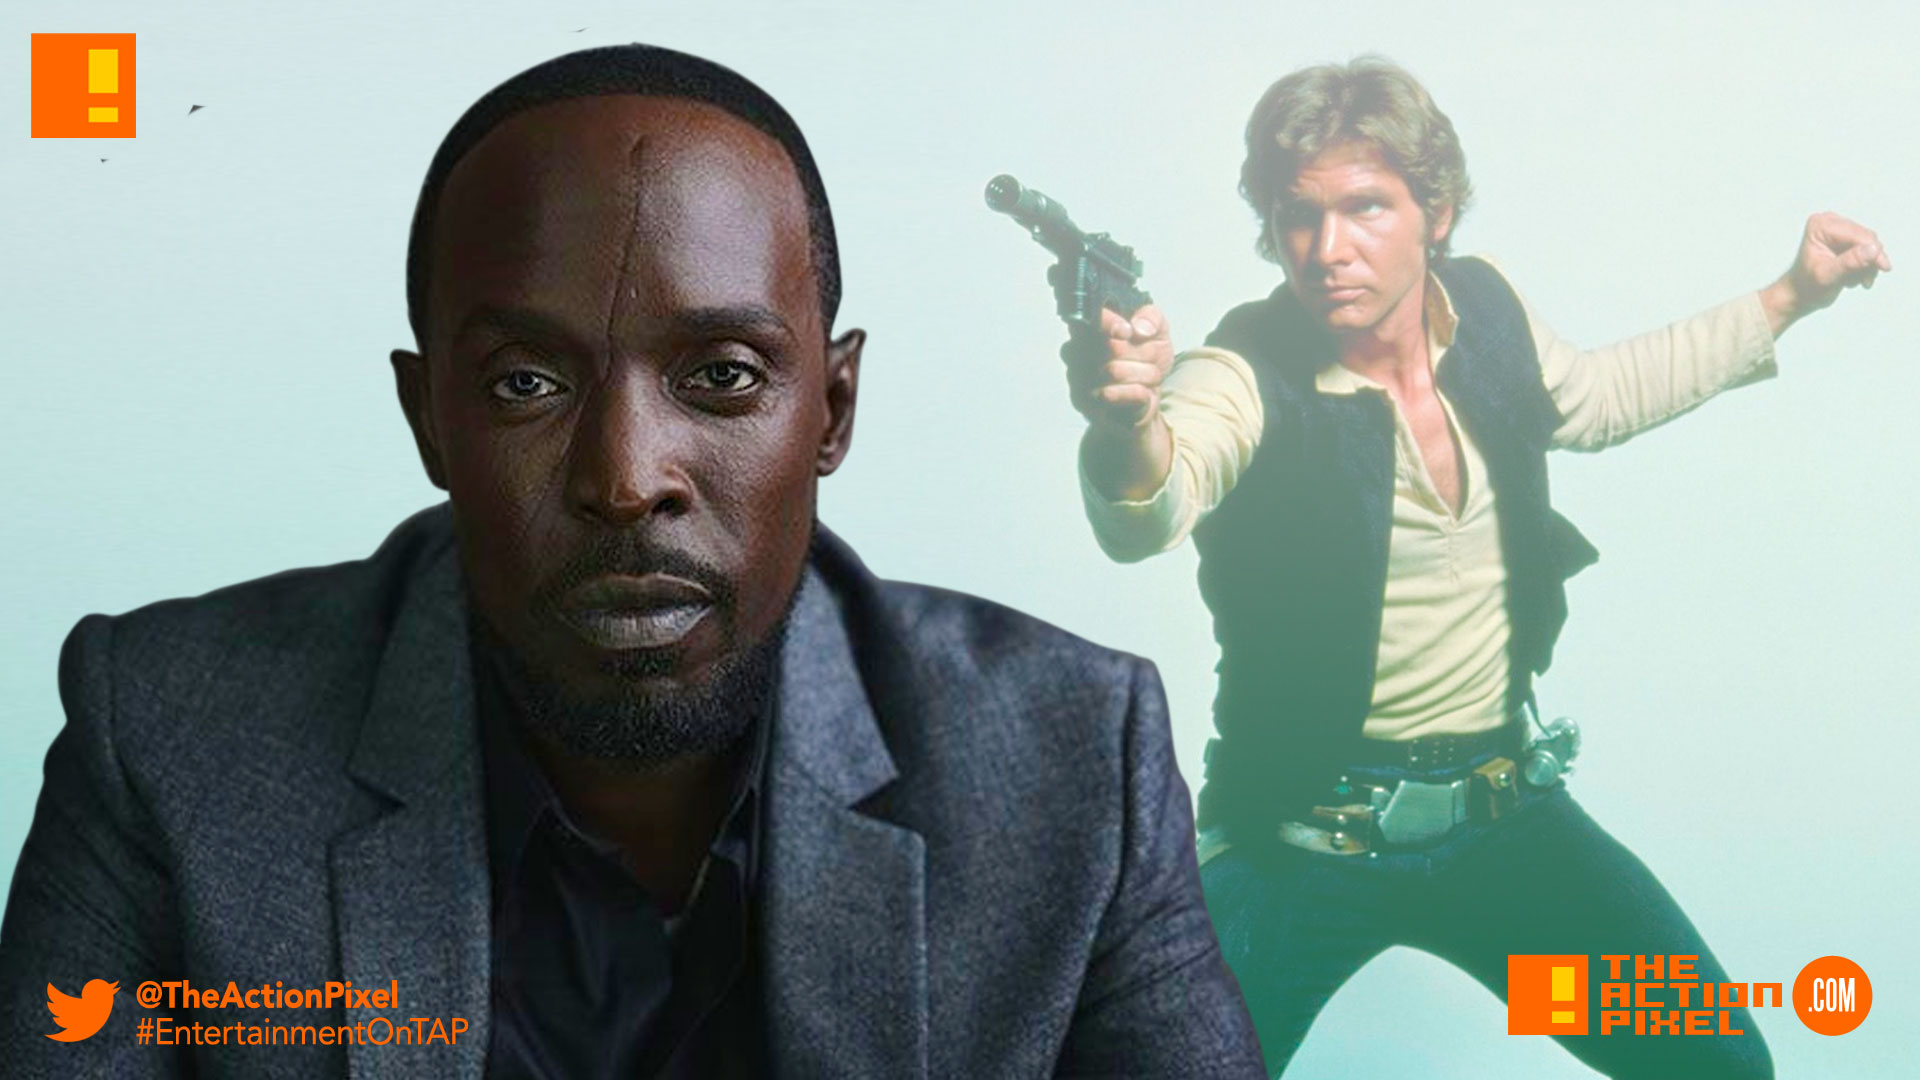 michael l williams, han solo, han solo: a star wars story, star wars, the action pixel, entertainment on tap